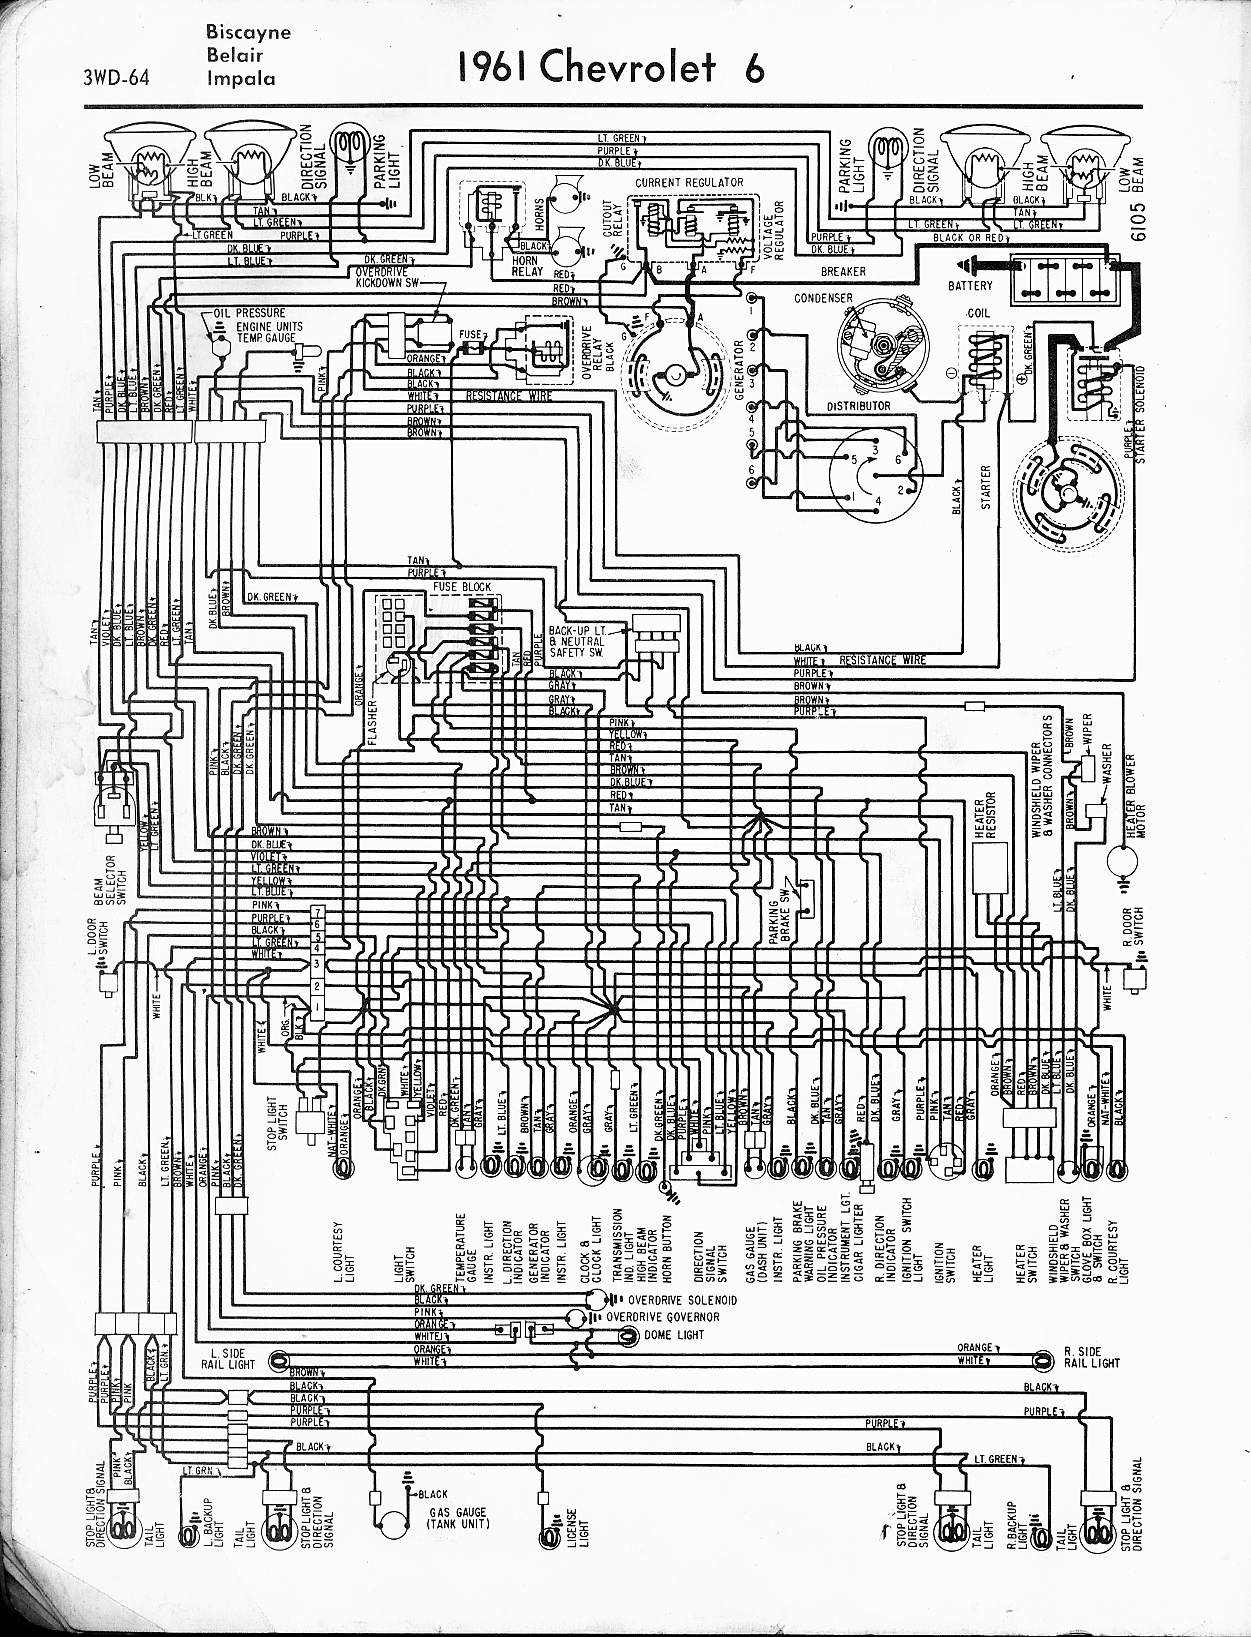 2001 impala wiring schematic simple wiring diagram schema57 65 chevy wiring diagrams 2001 impala radio wiring diagram 2001 impala wiring schematic